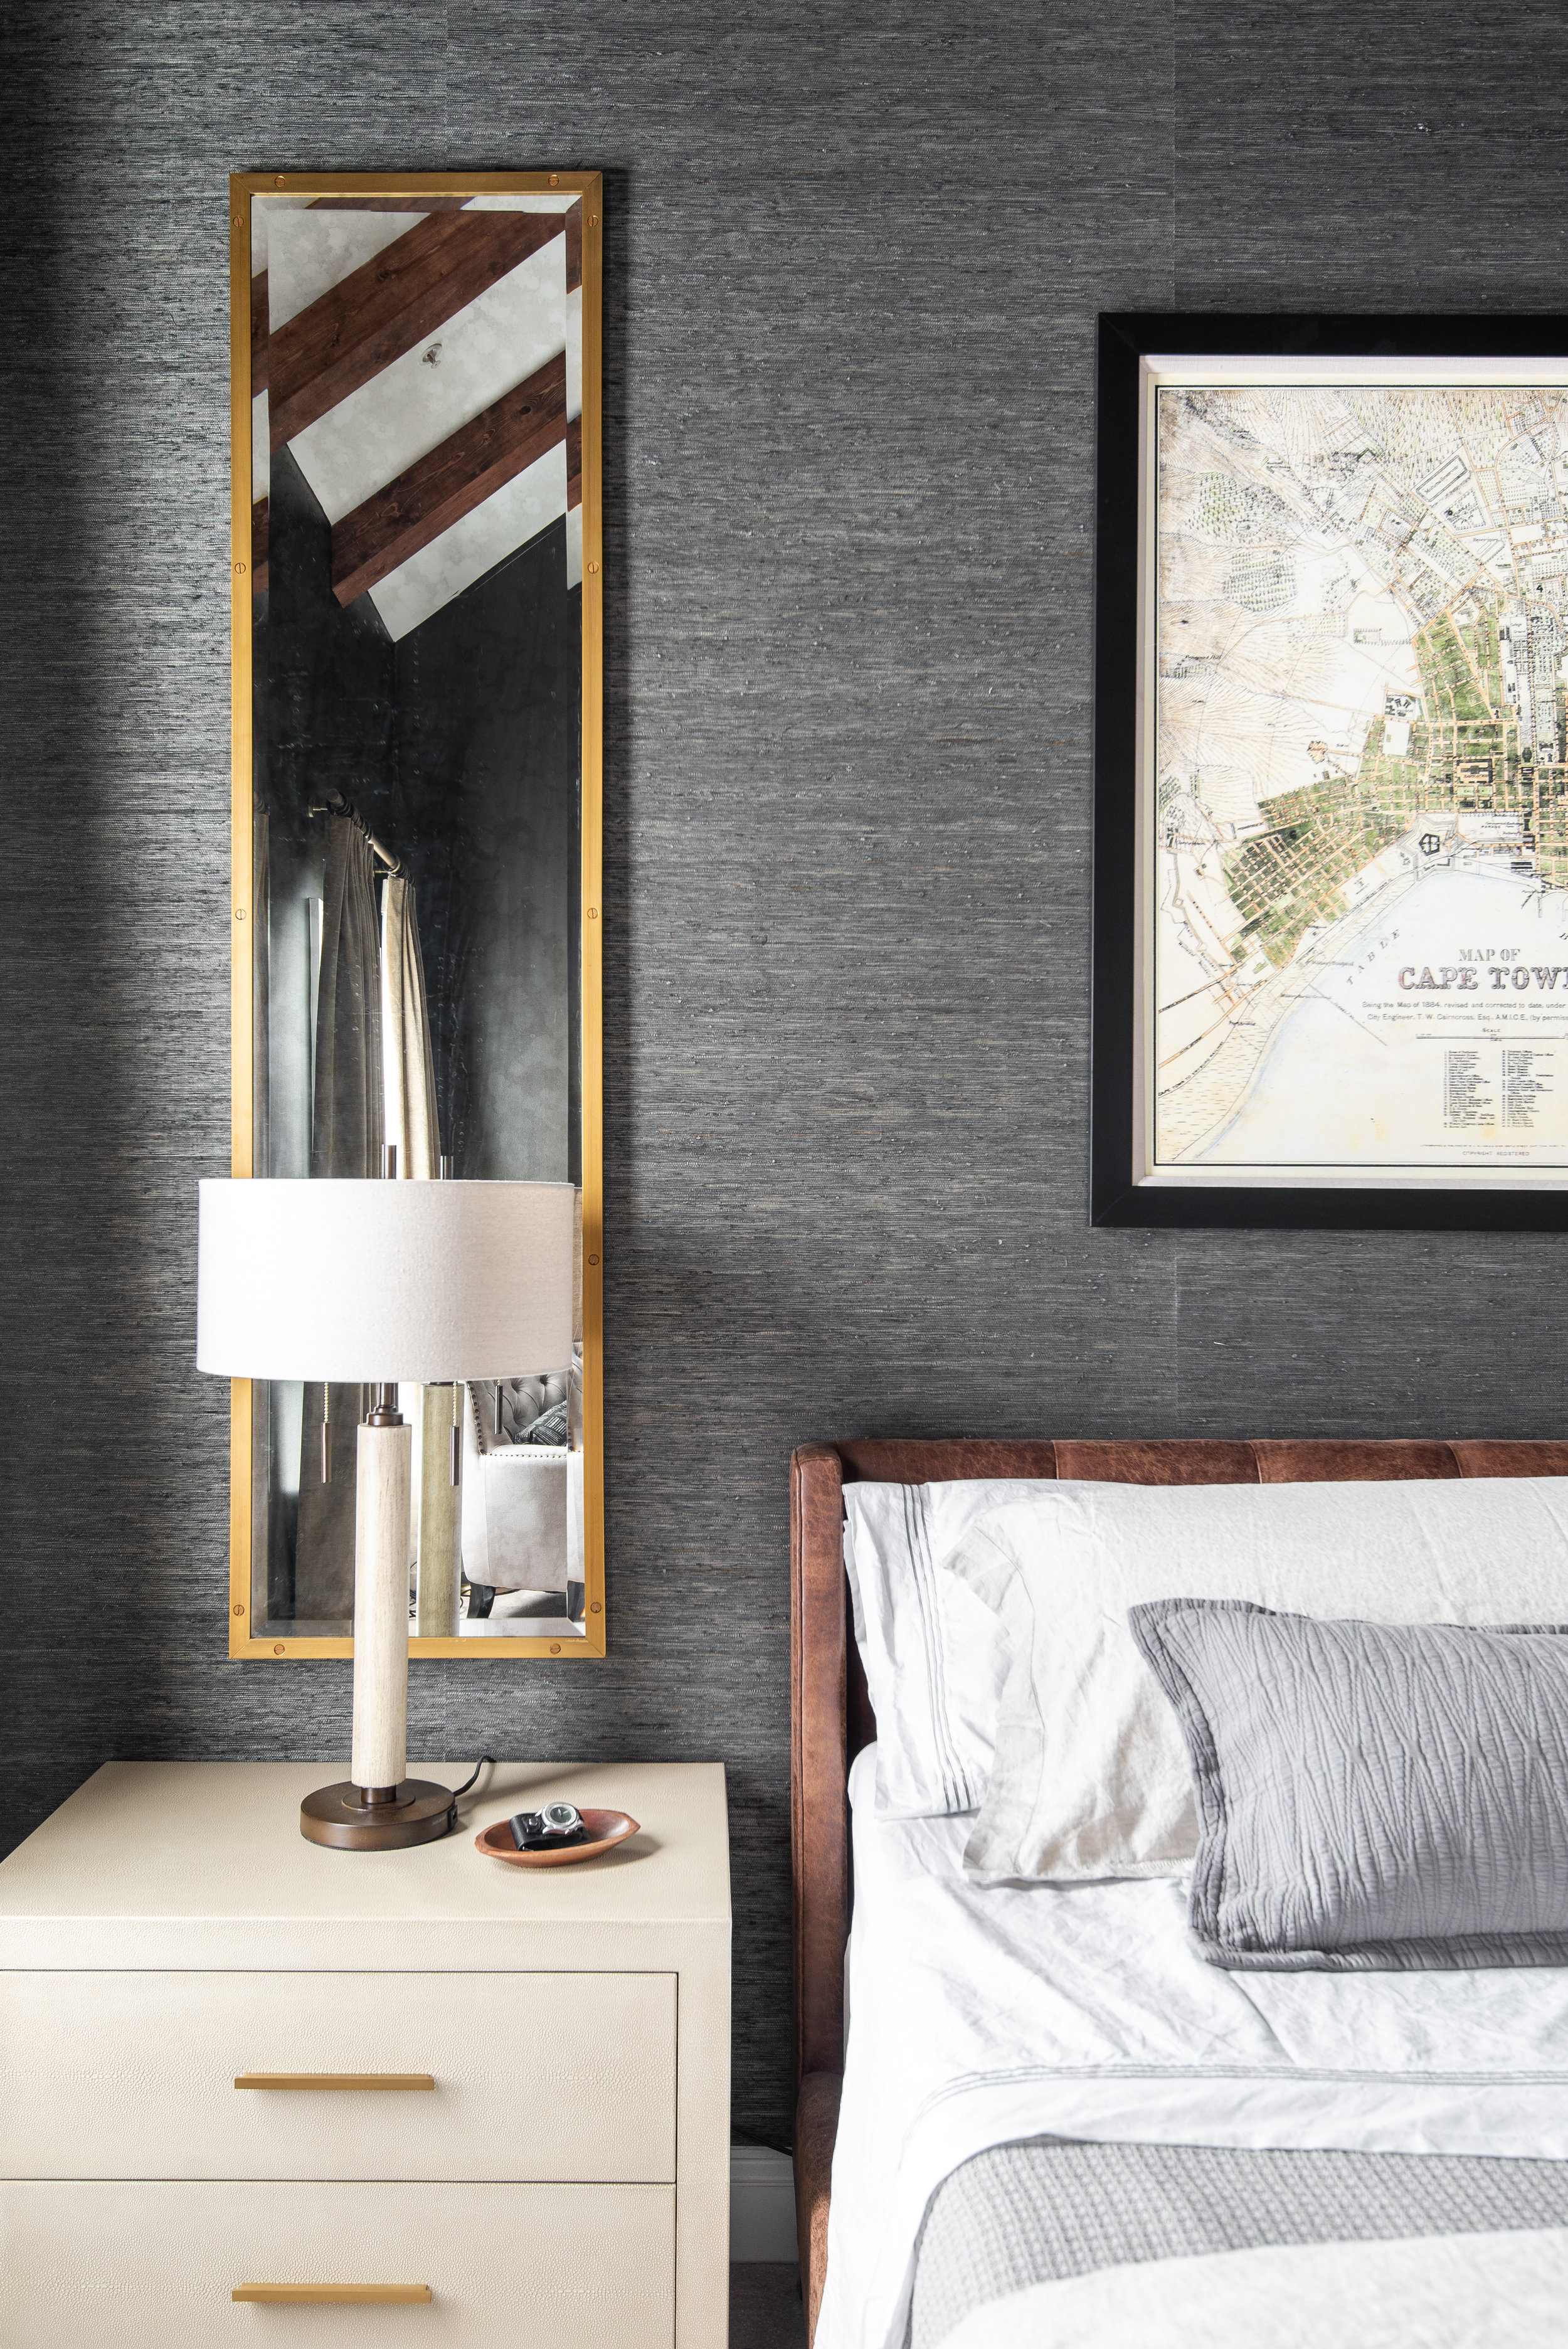 nightstand-shagreen-long-gold-mirror-grasscloth-dark-walls-bedroom-washington-dc.jpg